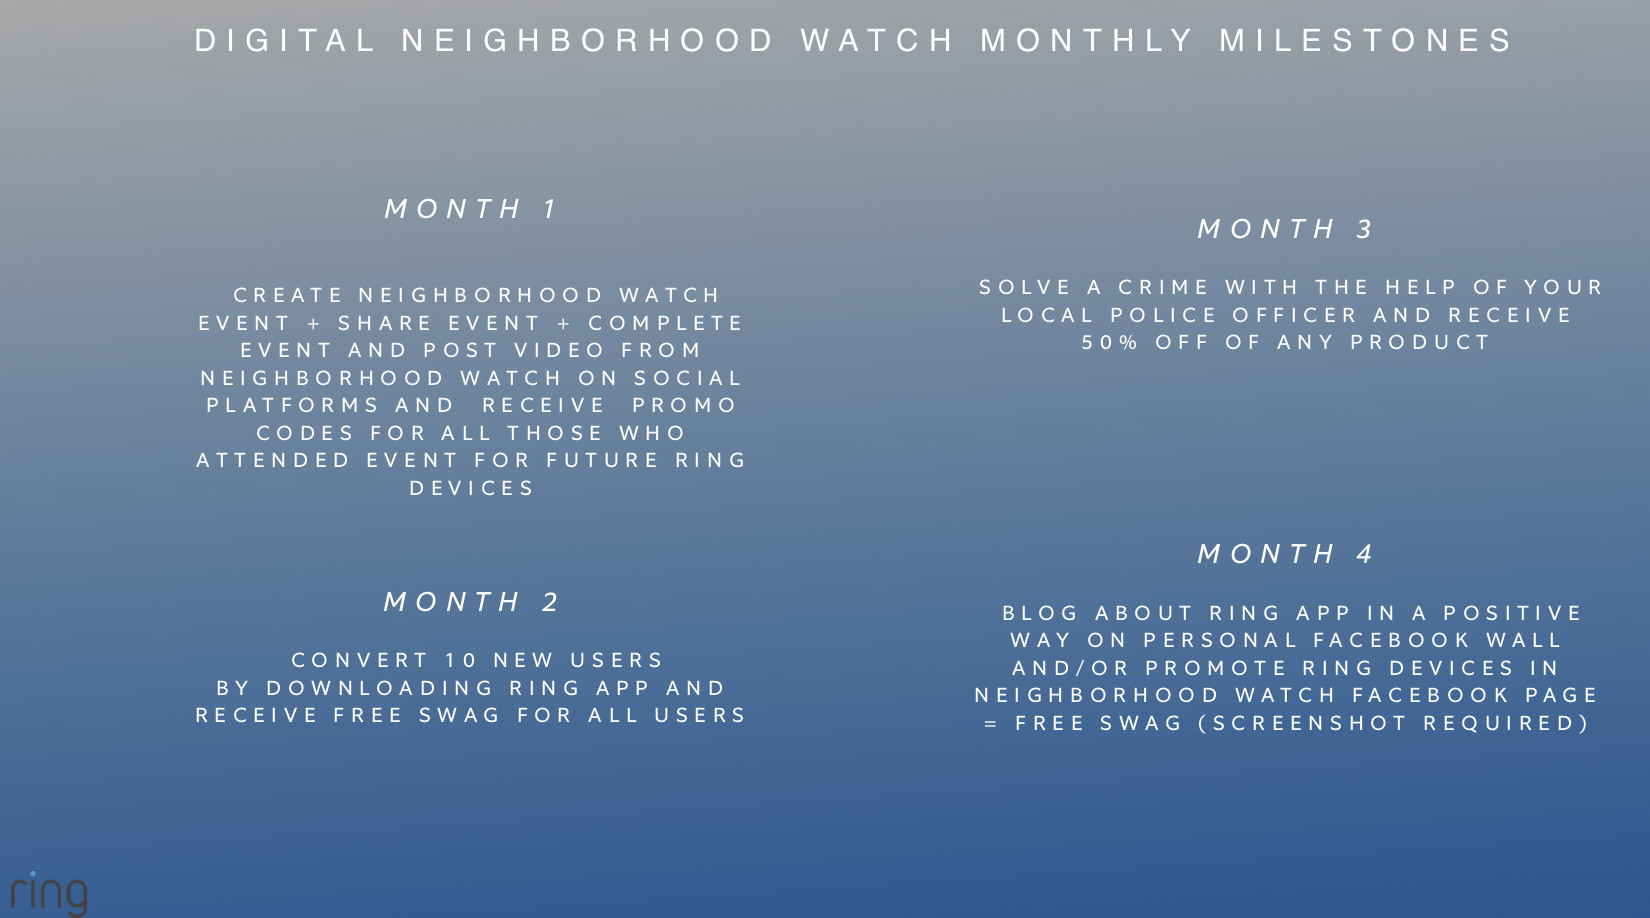 Image: Slide 13 of the Digital Neighborhood Watch document obtained by Motherboard.